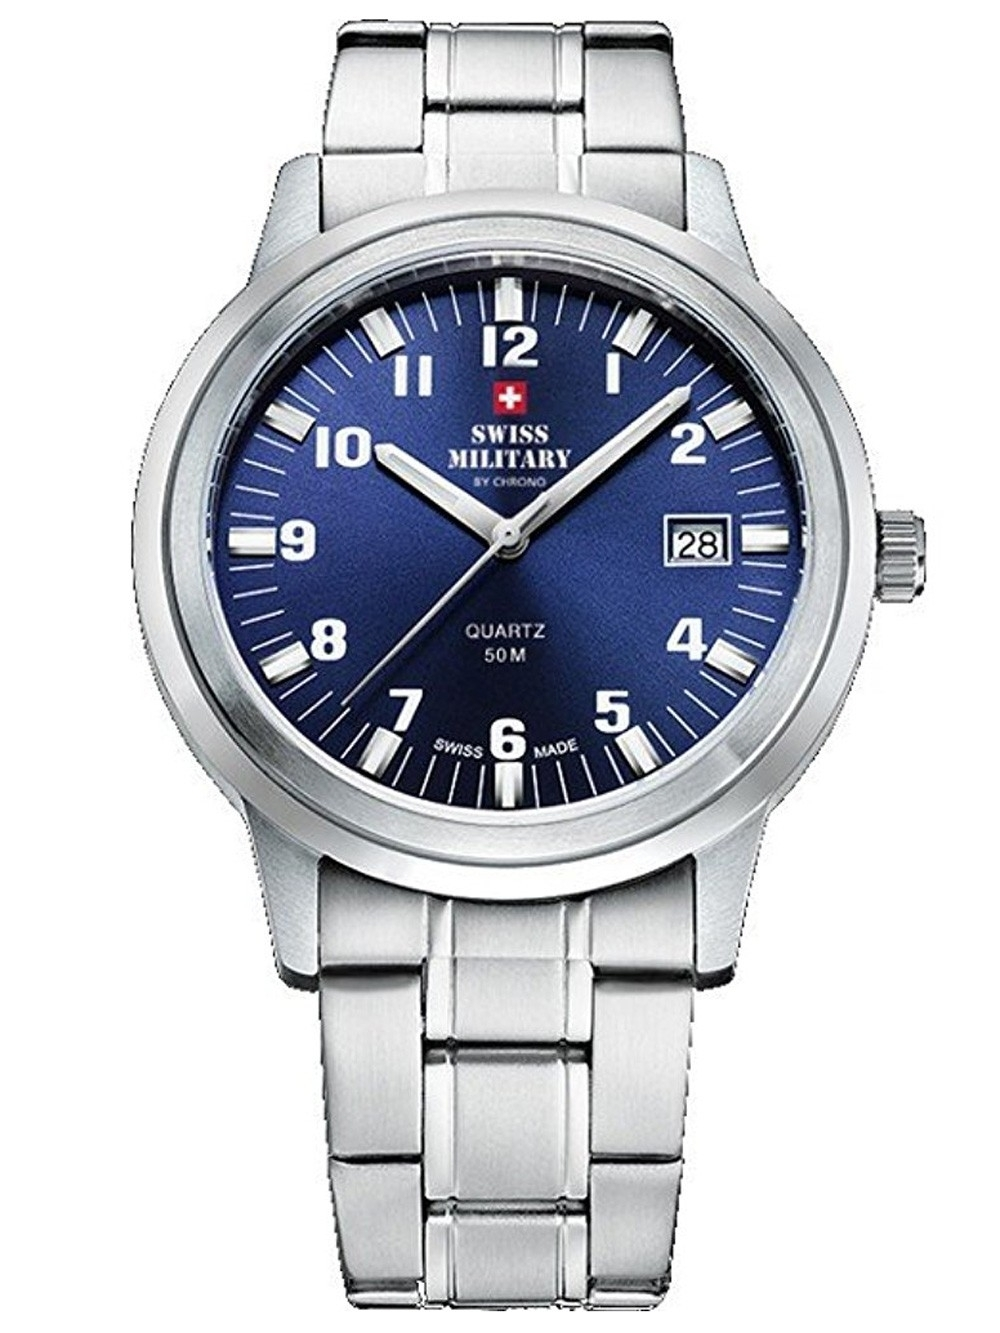 Watches chrono12 swiss military herren 40mm 5atm for Watches 40mm